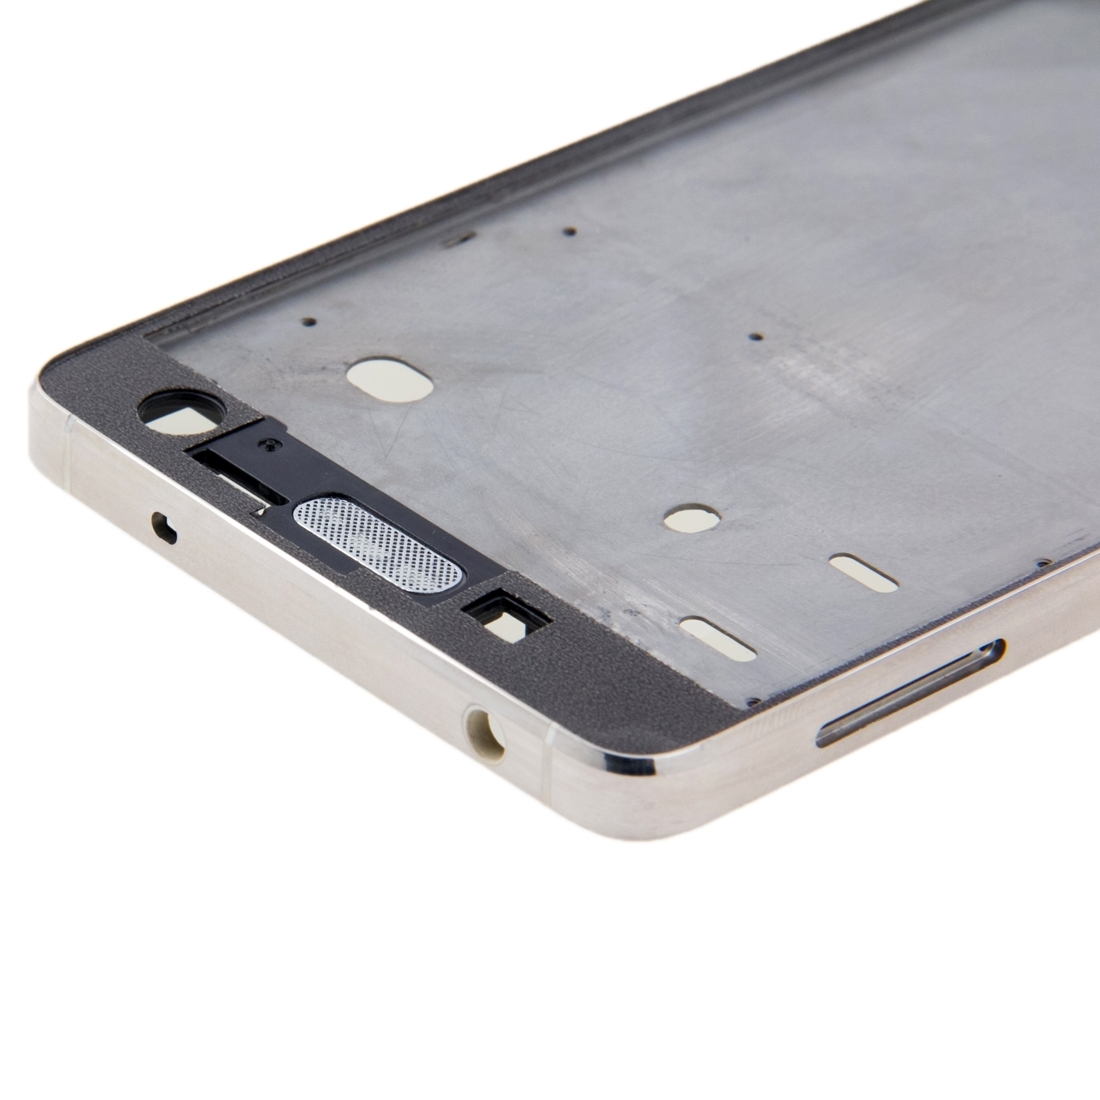 iPartsBuy Replace Housing for Xiaomi Mi 4 Mi4 Mobile Phone Front Housing LCD Frame Bezel Plate Replace Parts Silver Bamper